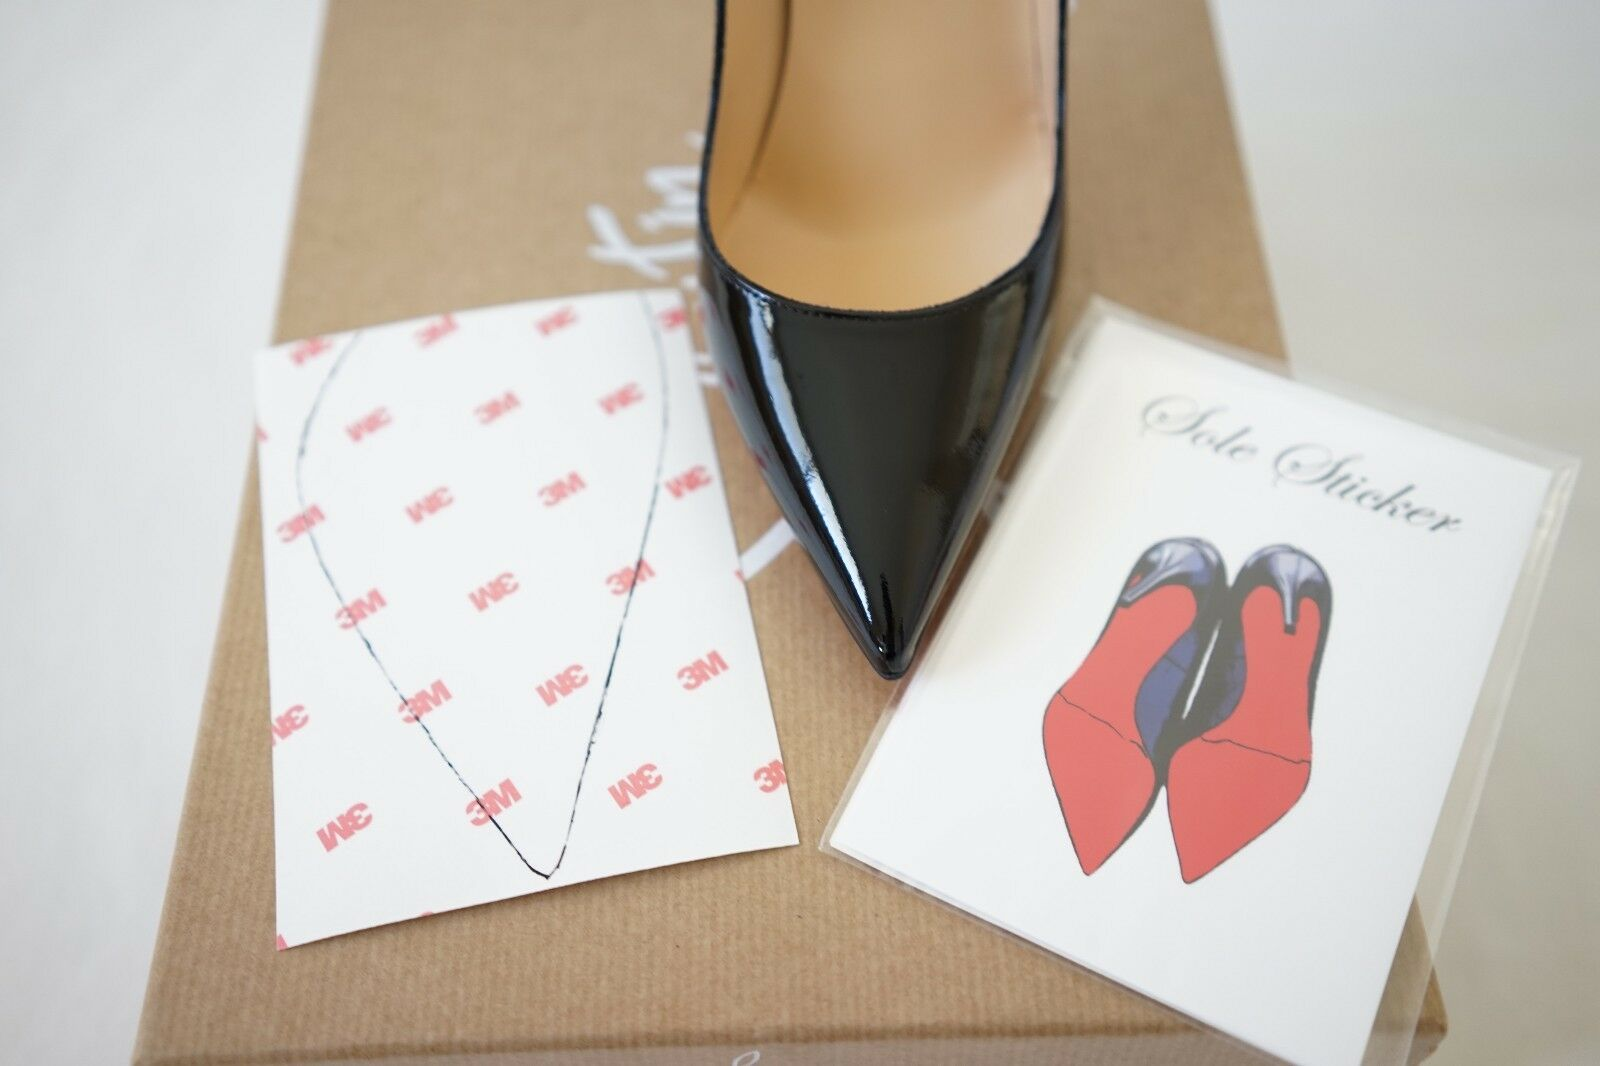 efbf3c3db35c7 Details about Crystal Clear 3M sole protector guard for Christian Louboutin  red bottom heels